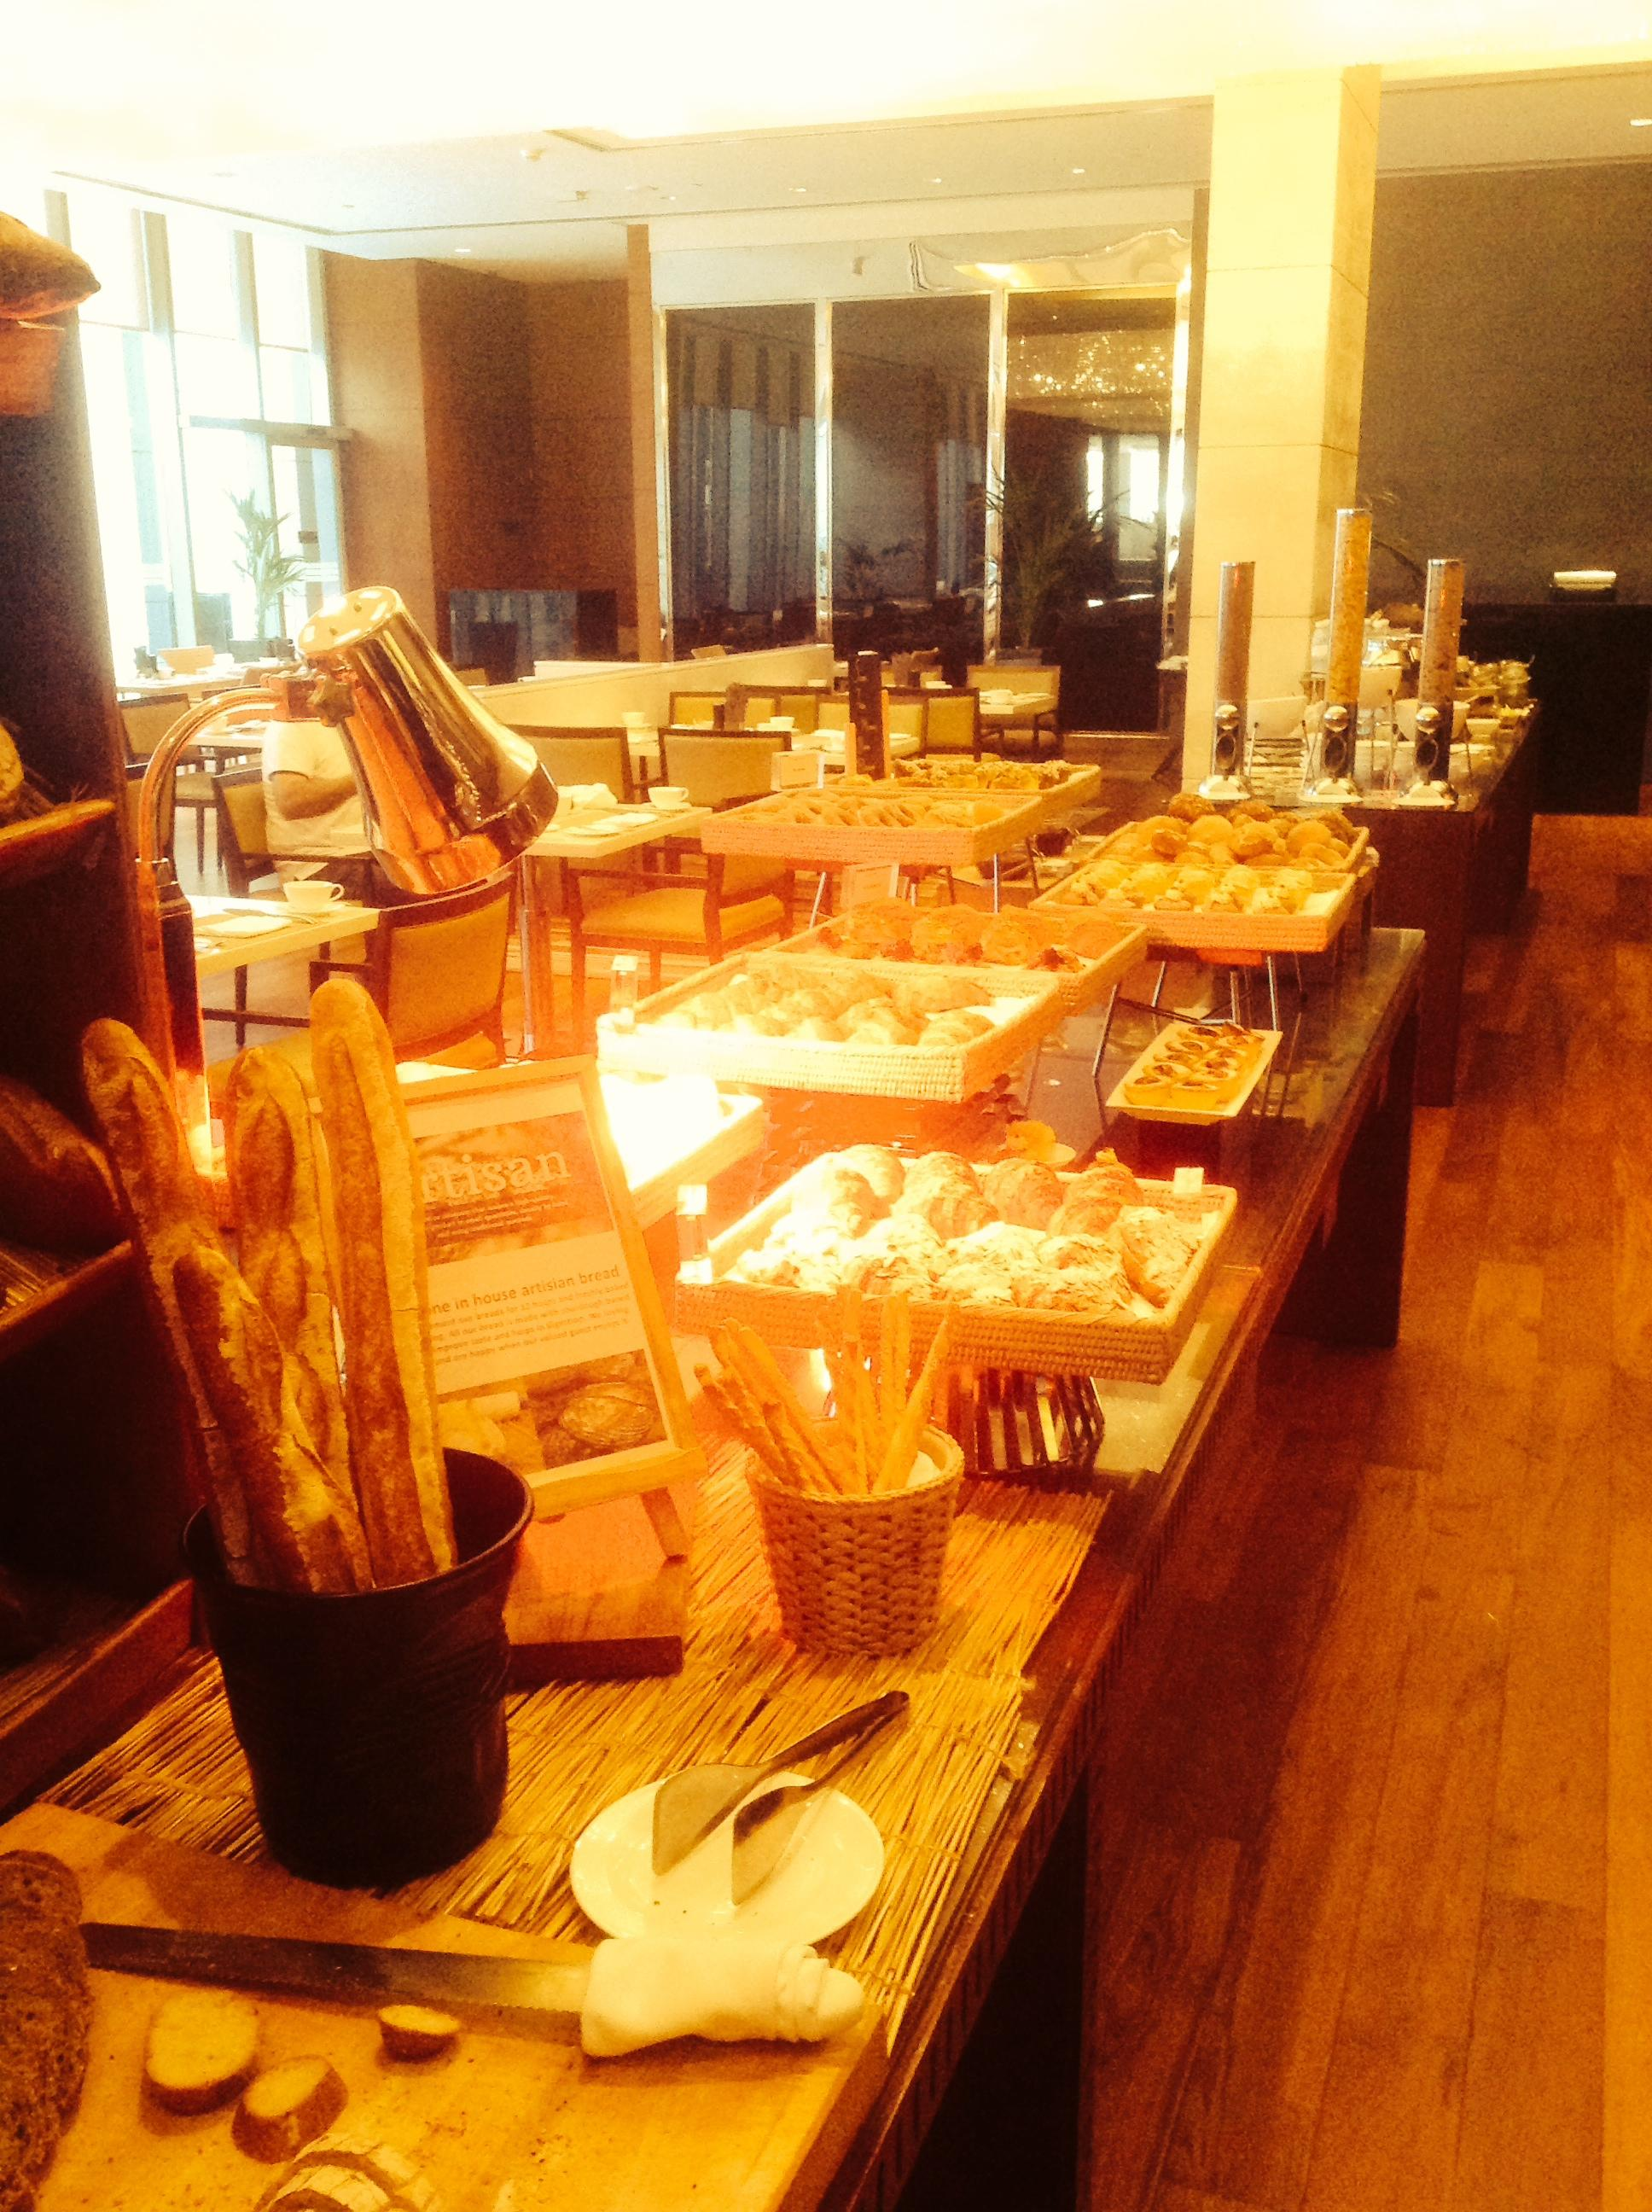 Every carb your heart desires at the breakfast buffet!